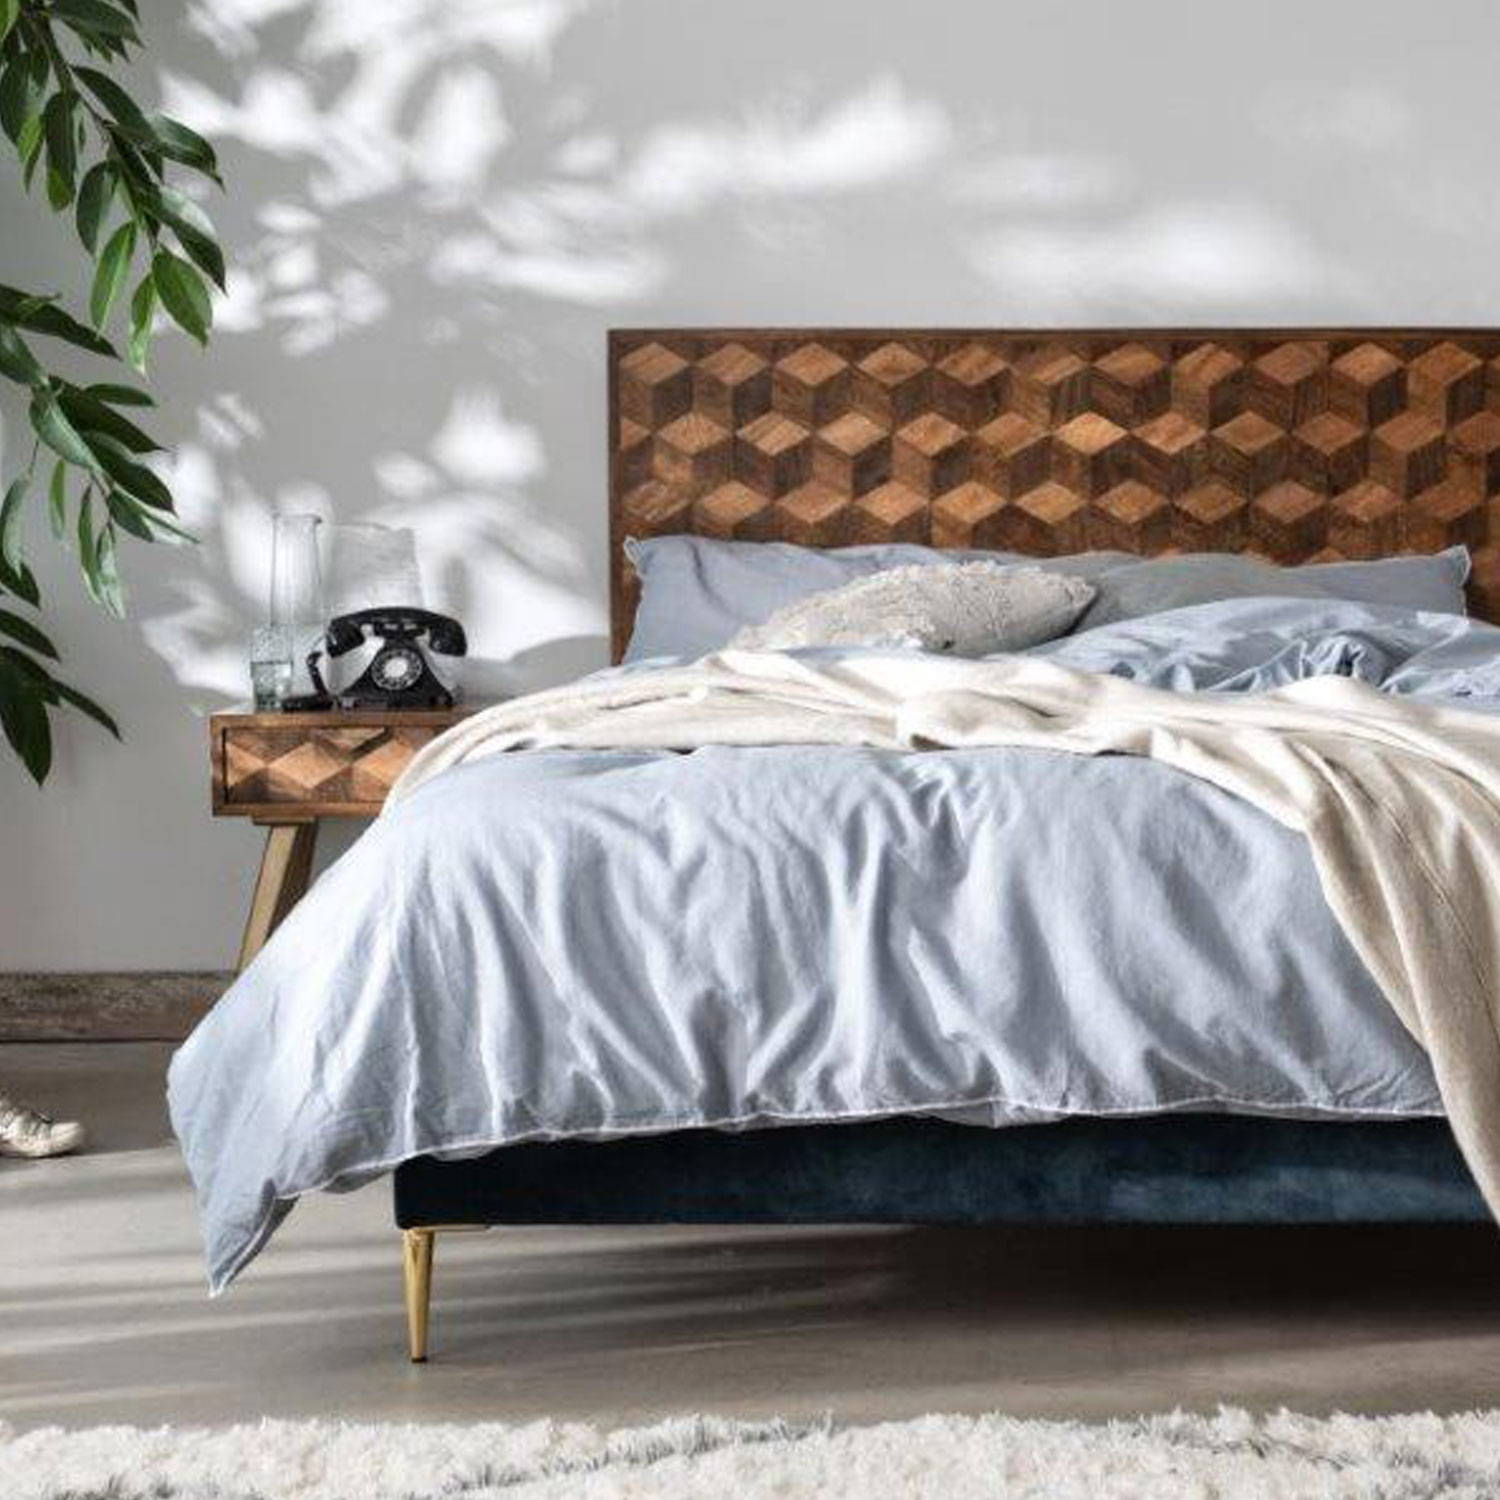 Instock beds with fast delivery